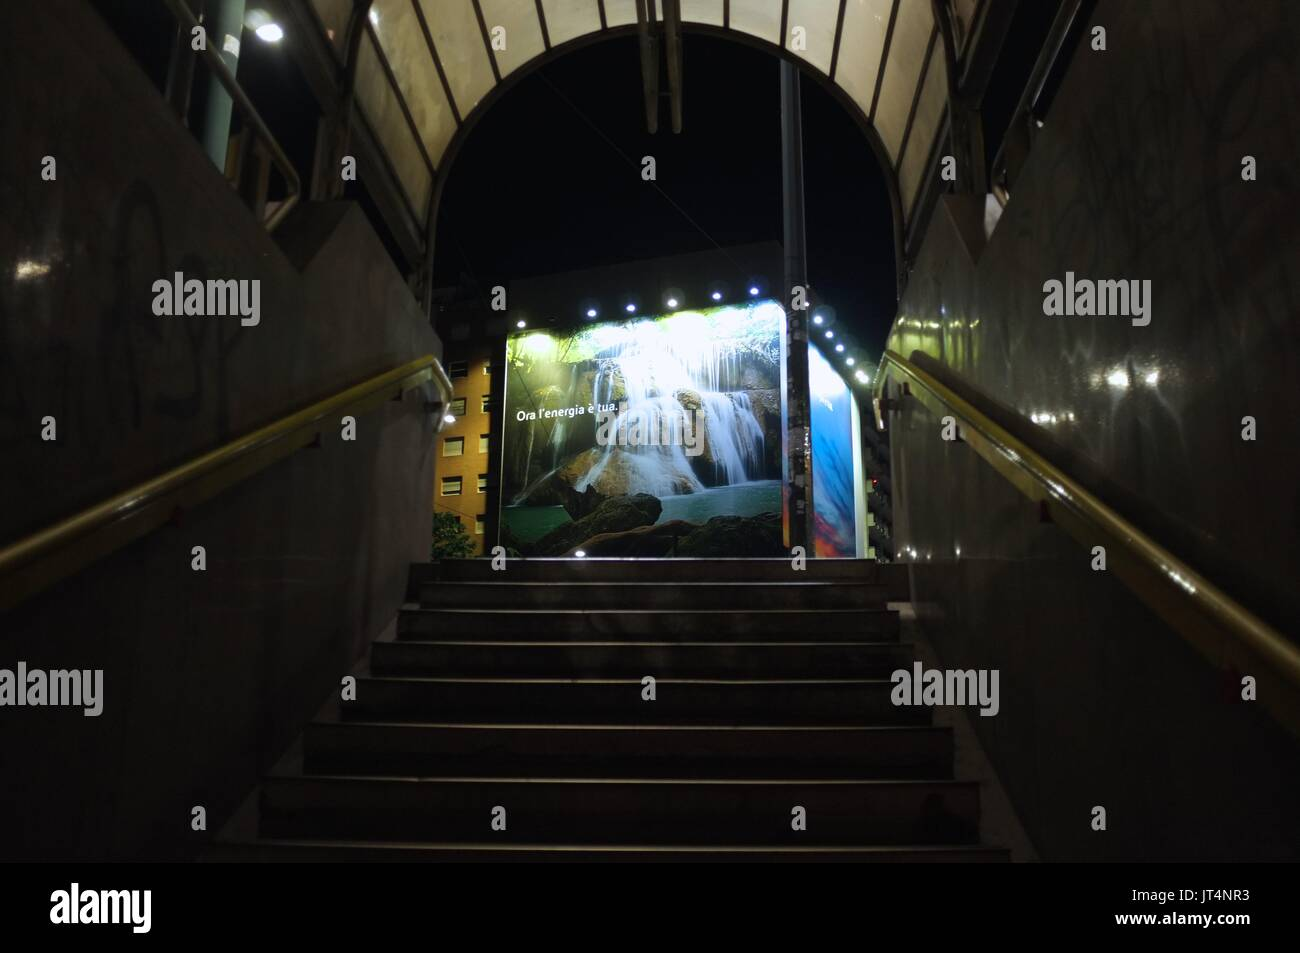 A billboard viewed from a metro station in Milan, Lombardy, Italy, July 2017 - Stock Image